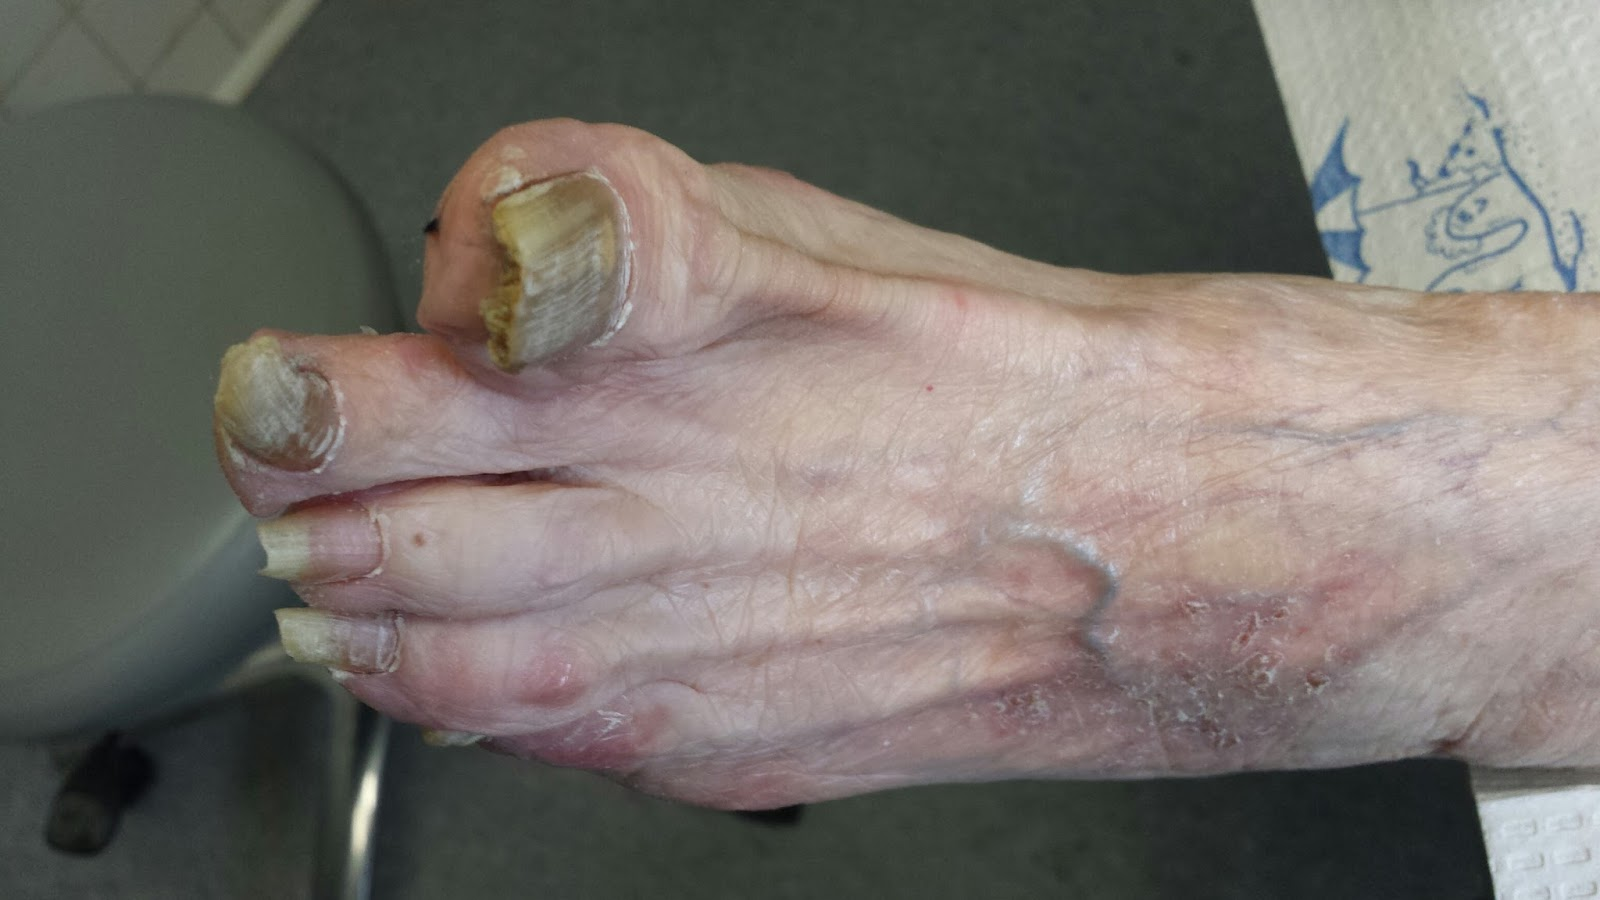 Pictures of infected toes - Awesome Nail